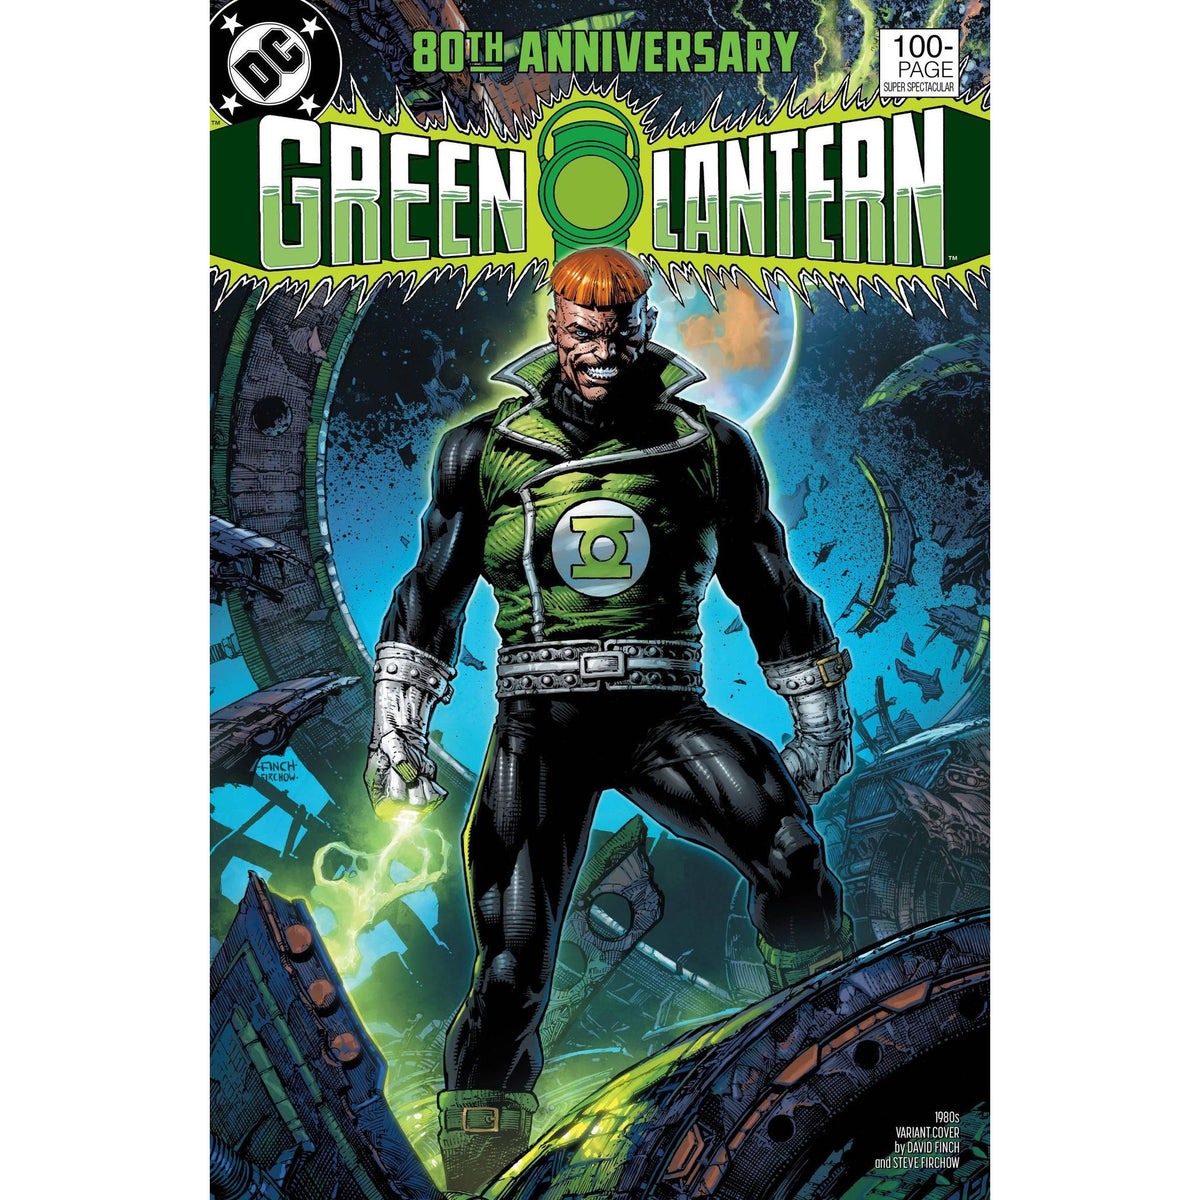 GREEN LANTERN 80TH ANNIVERSARY 100 PAGE SUPER SPECTACULAR #1 - 1980S FINCH COVER F - DC COMICS